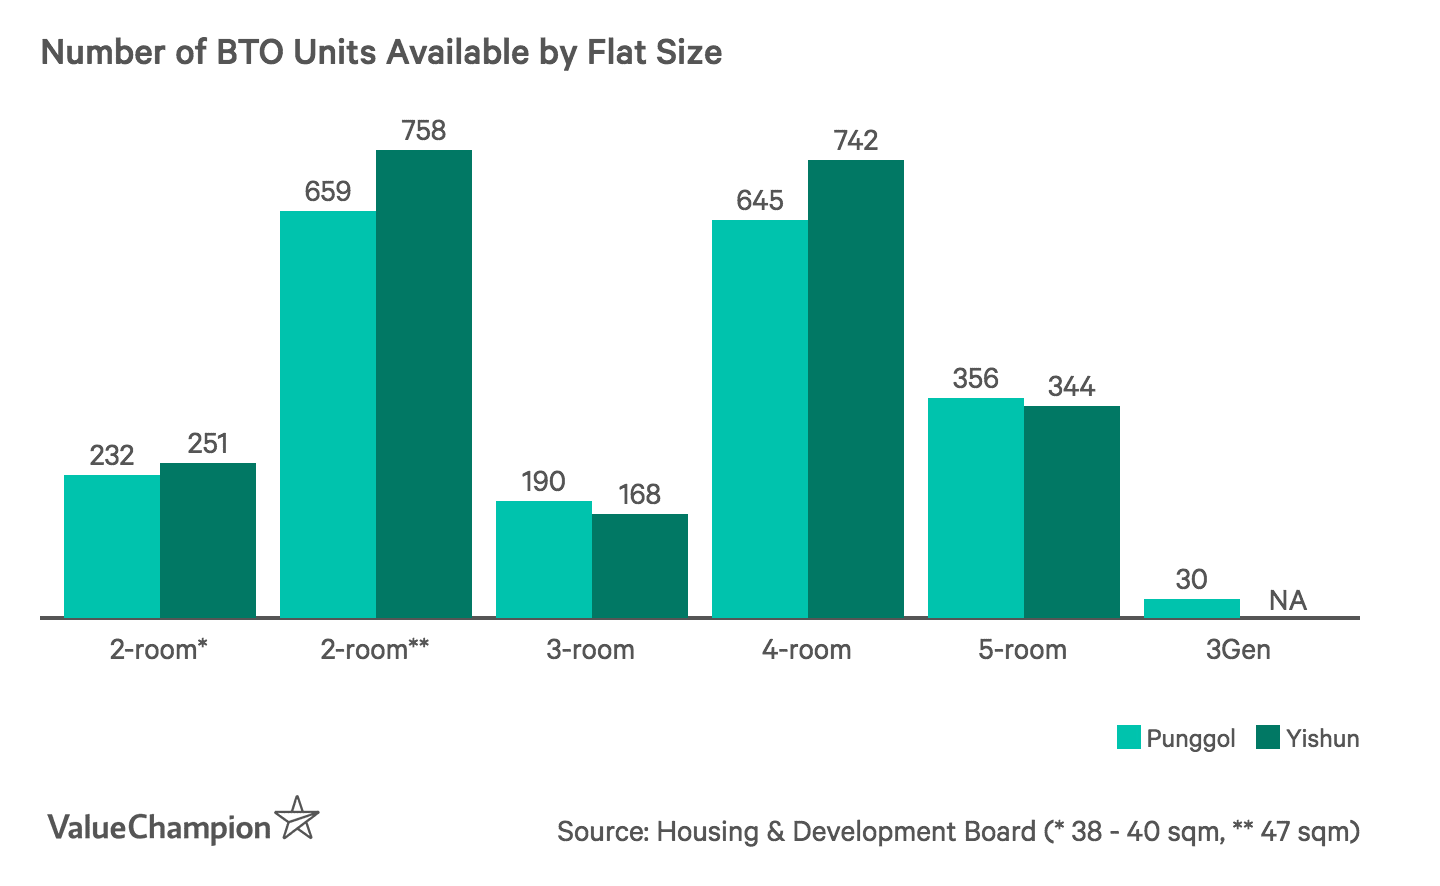 Number of BTO Units Available by Flat Size